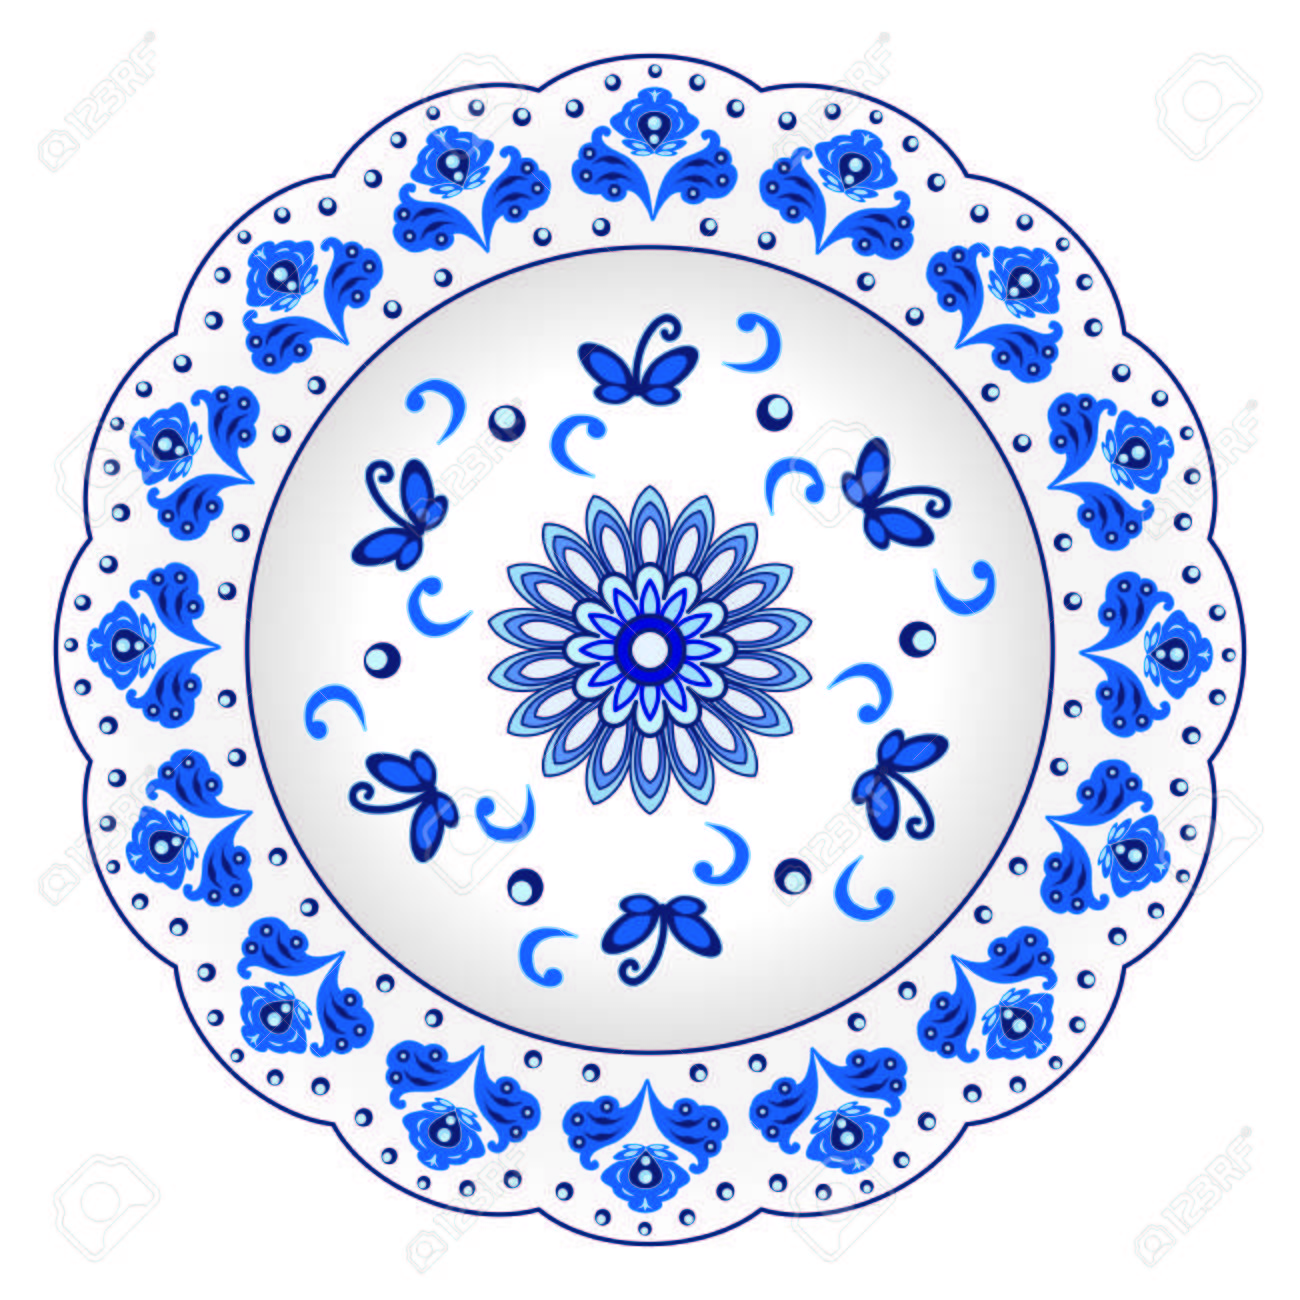 Decorative porcelain plate ornate in traditional Russian style Gzhel. Isolated white plate with blue floral  sc 1 st  123RF.com & Decorative Porcelain Plate Ornate In Traditional Russian Style ...